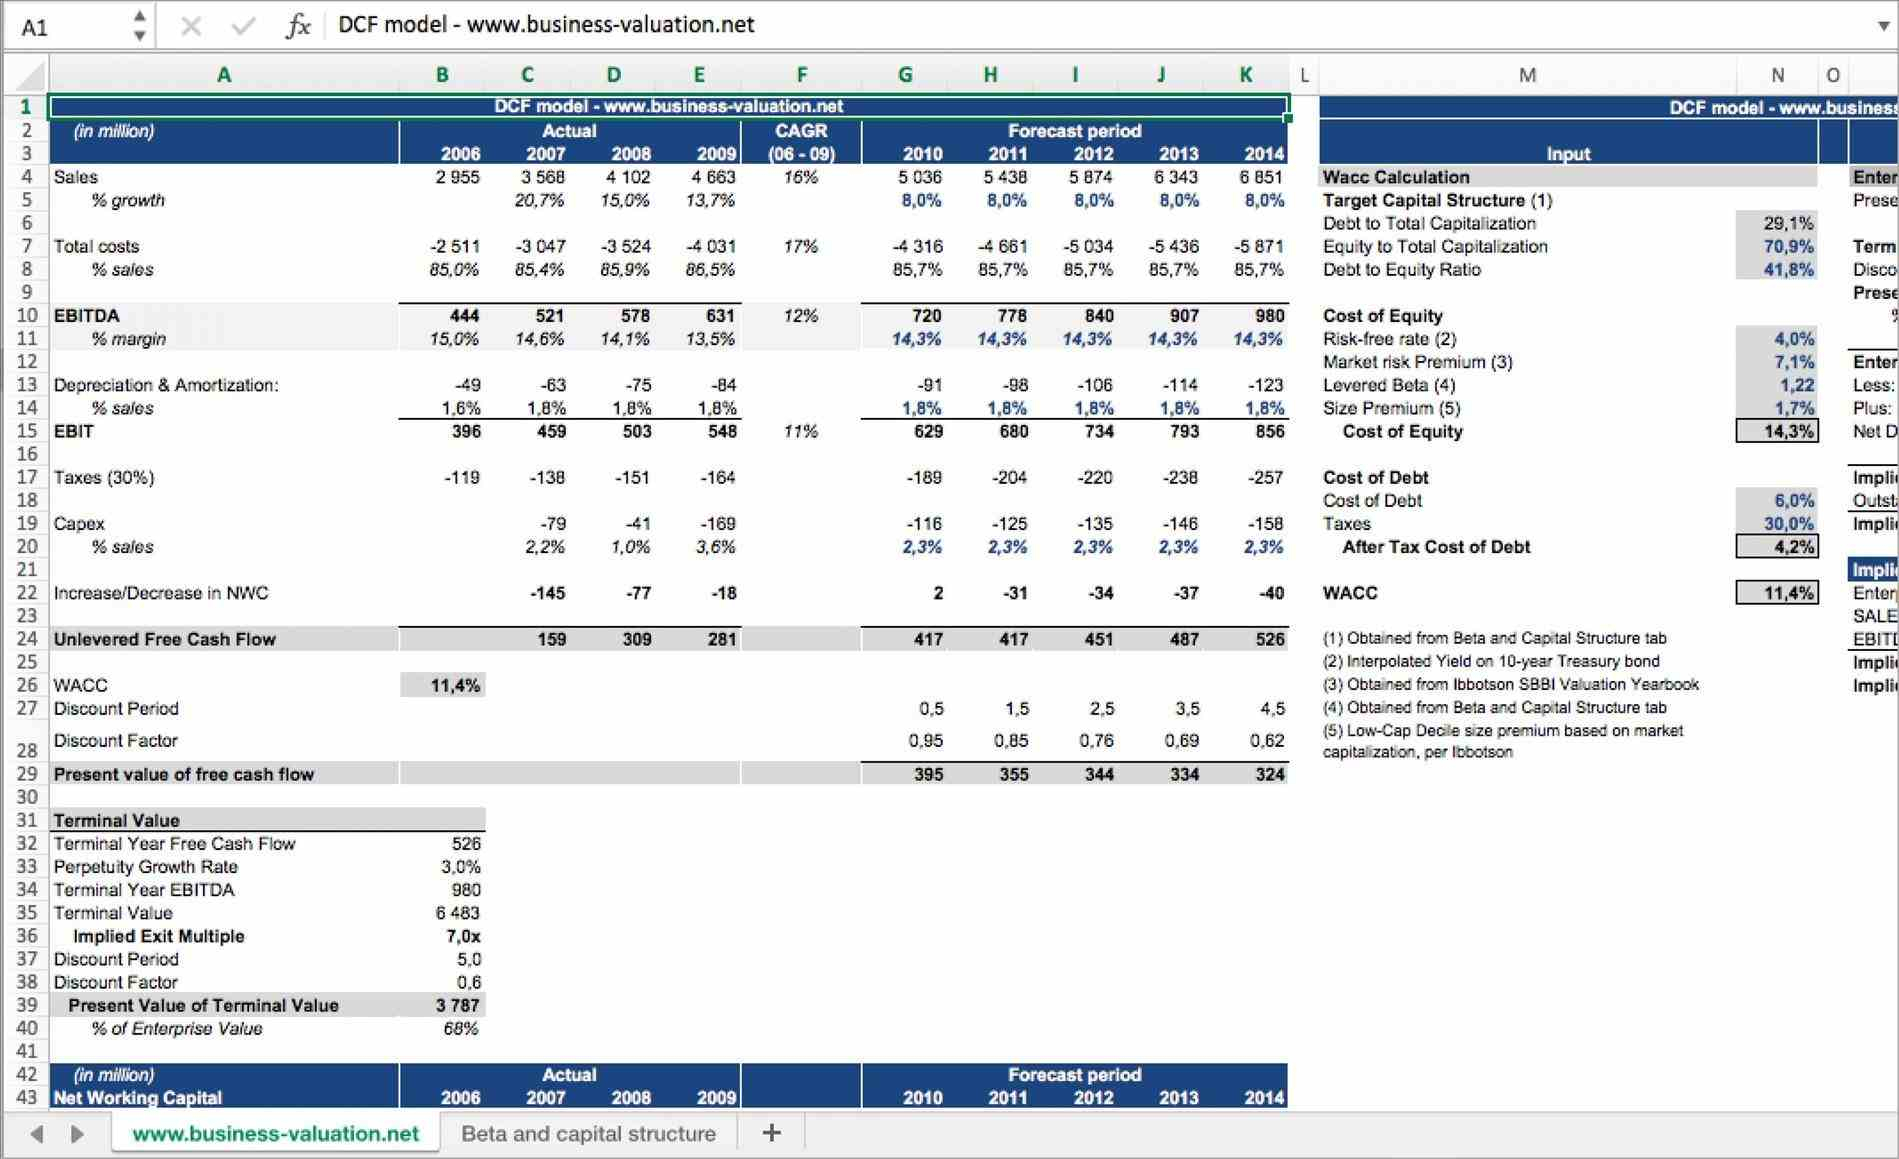 Excel Spreadsheet For Macbook Pro With Free Excel Spreadsheet Softwarenload Program For Macbook Pro Best